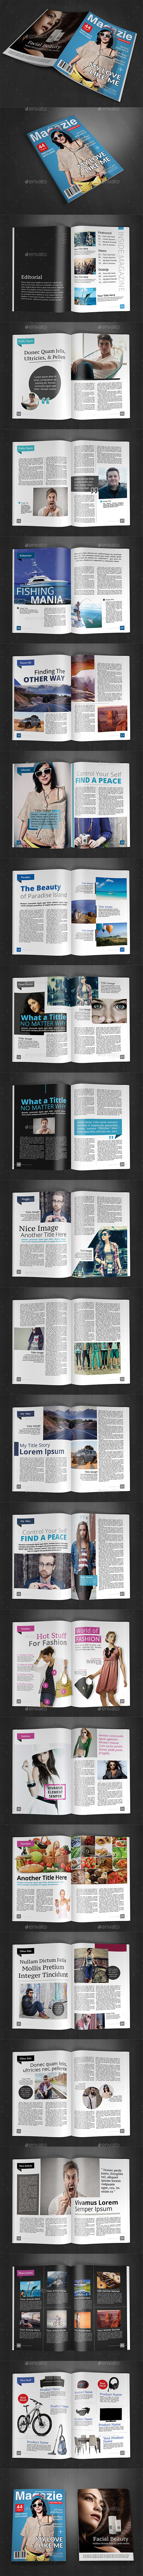 A4 Magazine Template Vol.7 - Magazines Print Templates